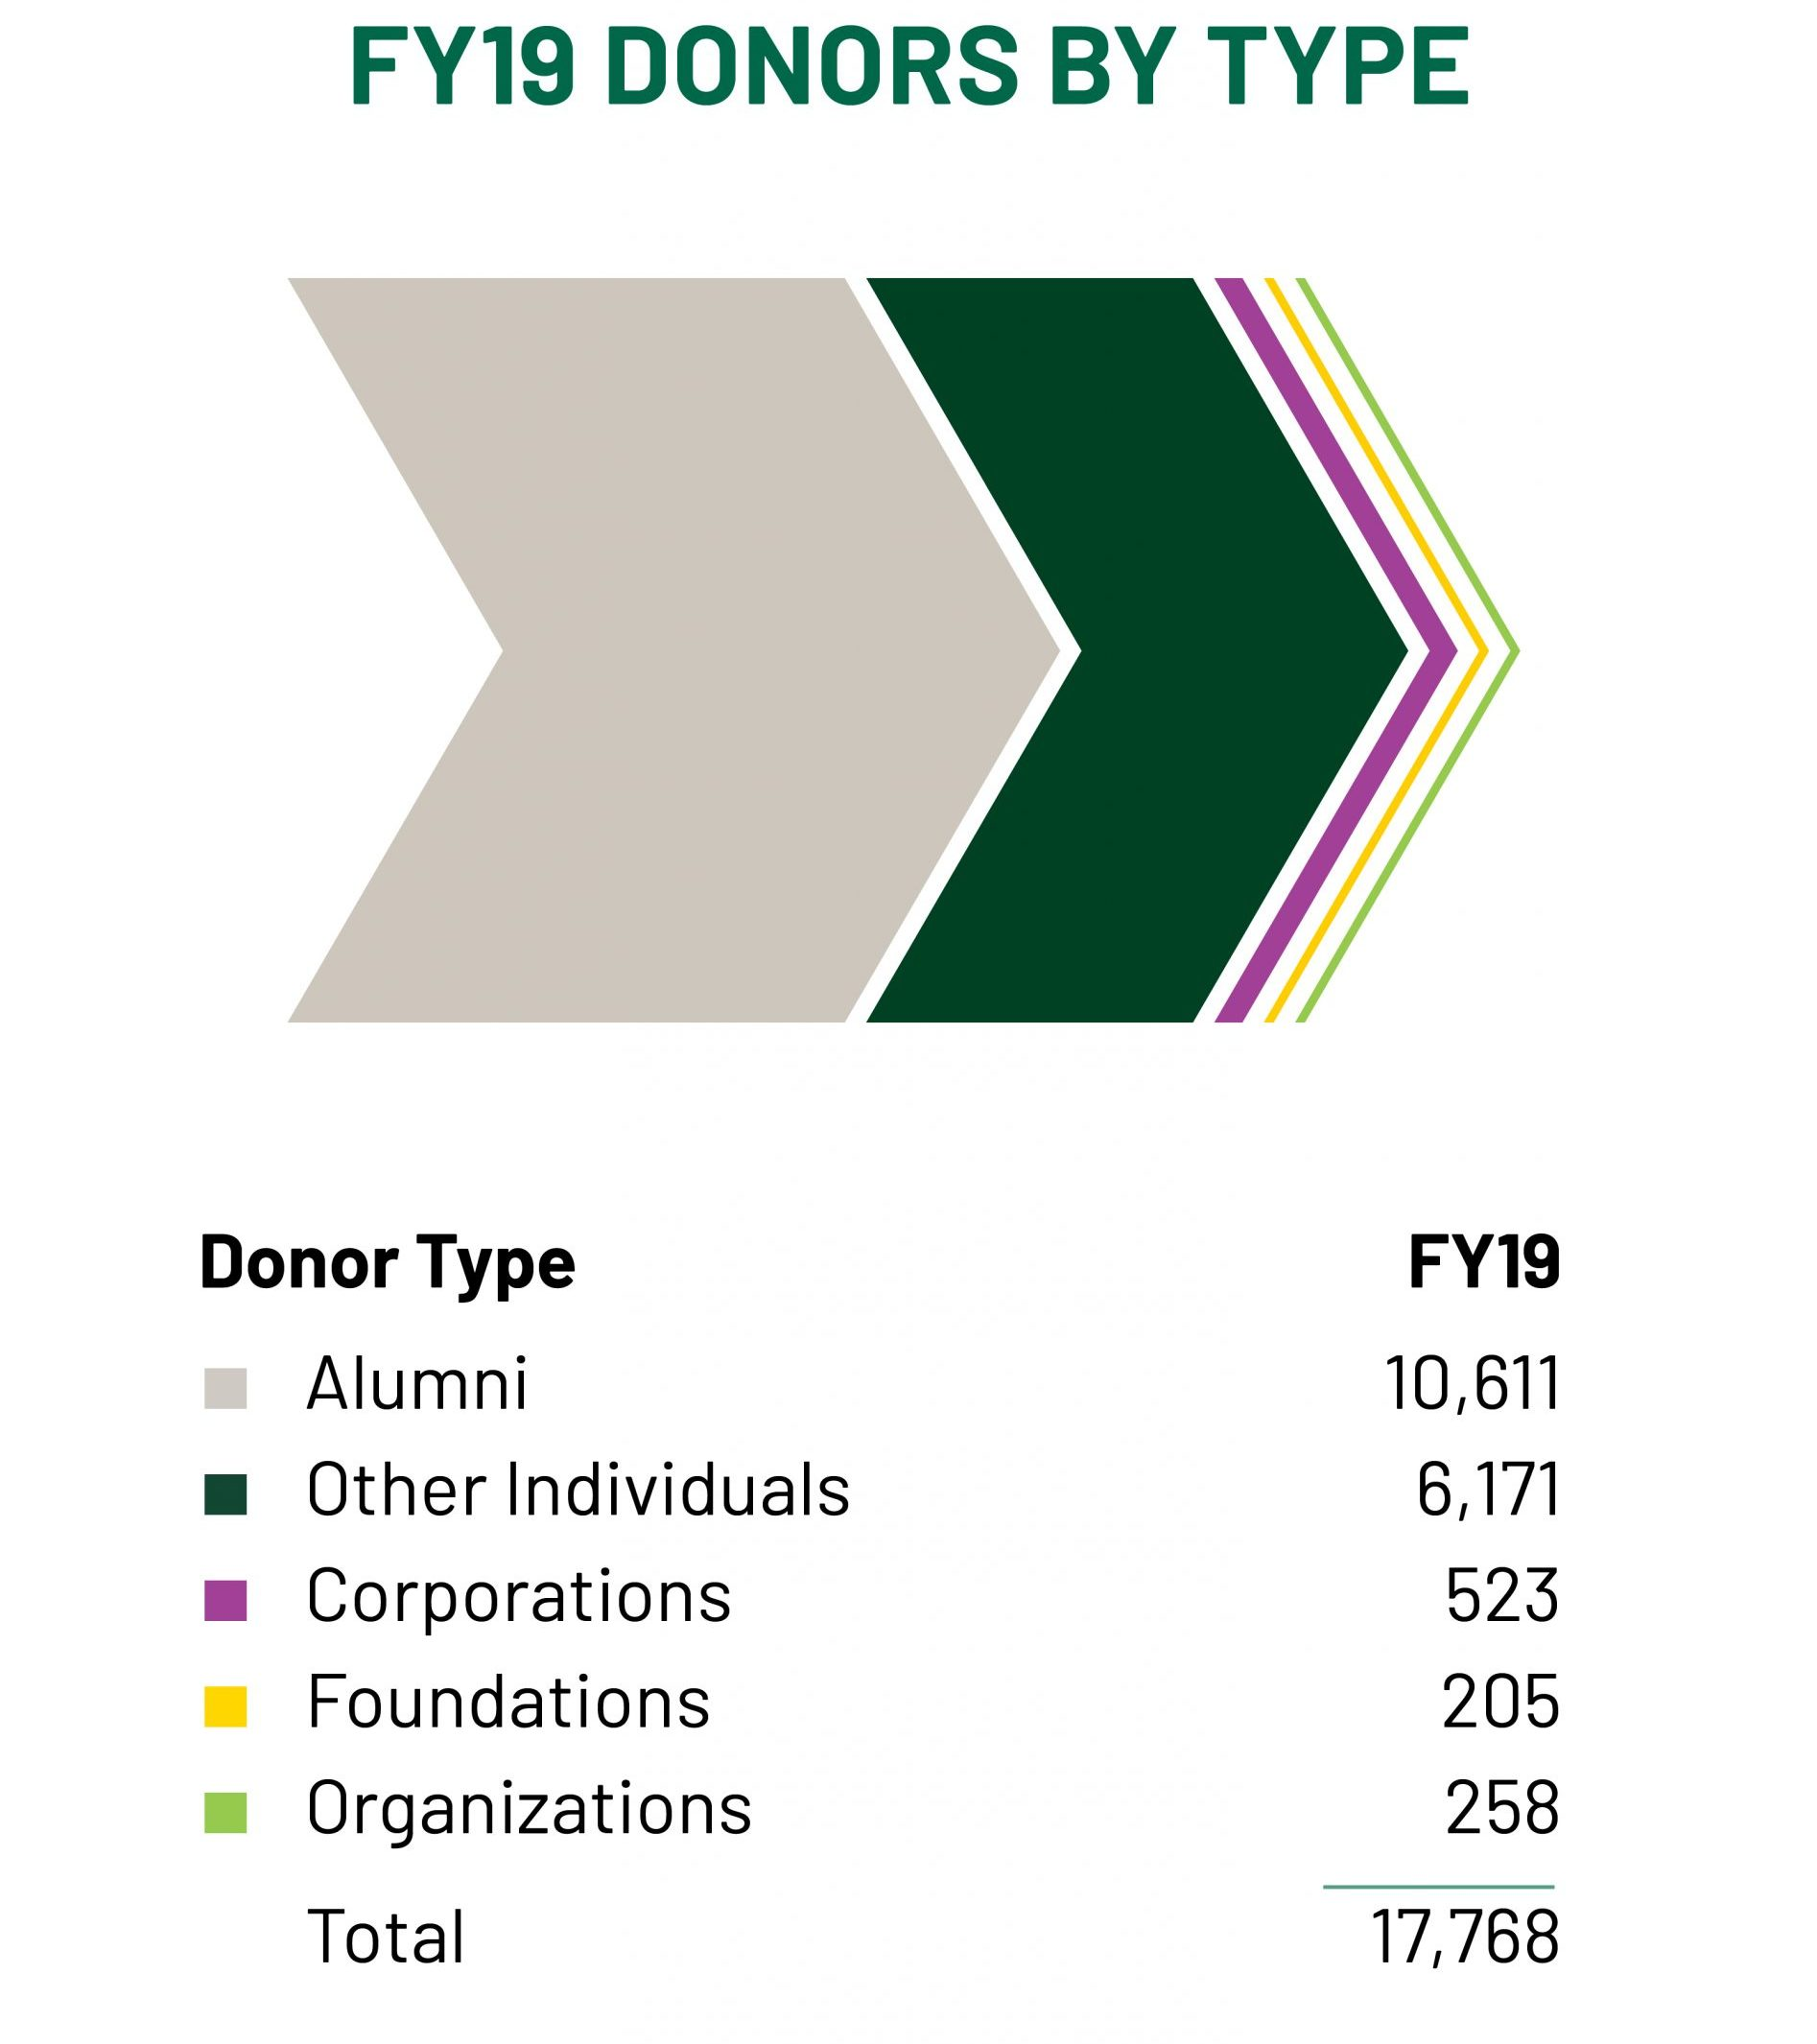 FY19 donors by type